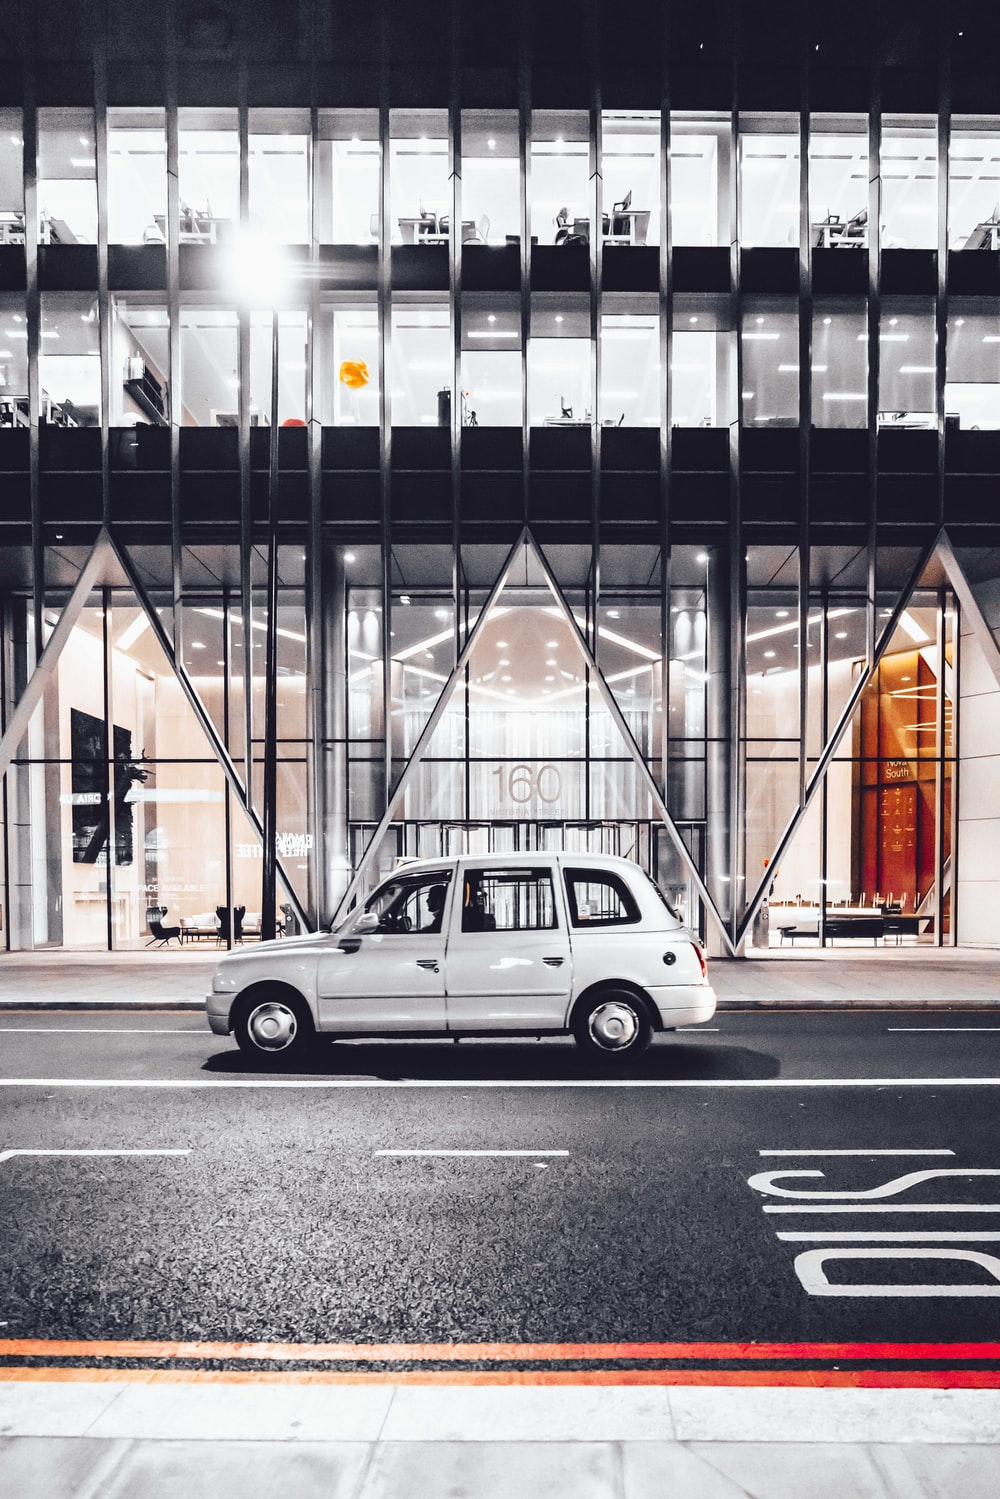 white 5-door hatchback on road near clear glass walled building